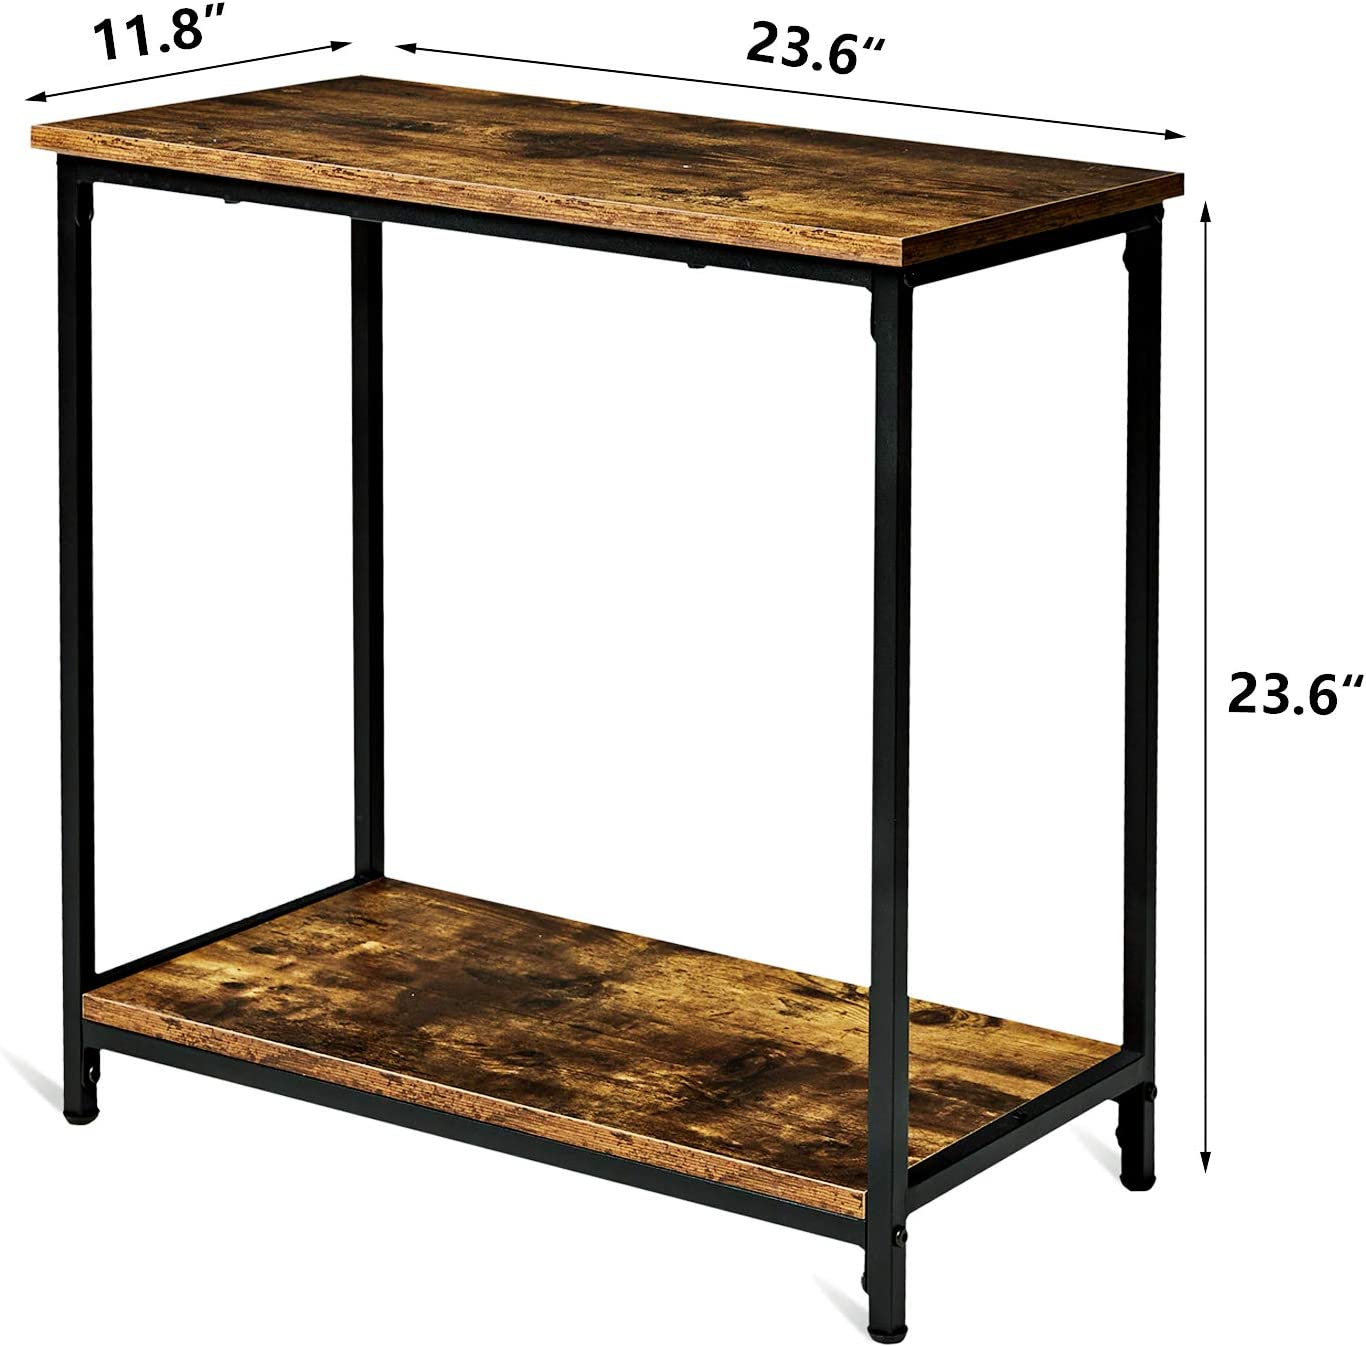 Tianlang Retro Industrial Side Table,End Table with 2 Shelf ,Narrow Table for Living Room,Kitchen Stable Metal Frame,Retro Brown LJET010F